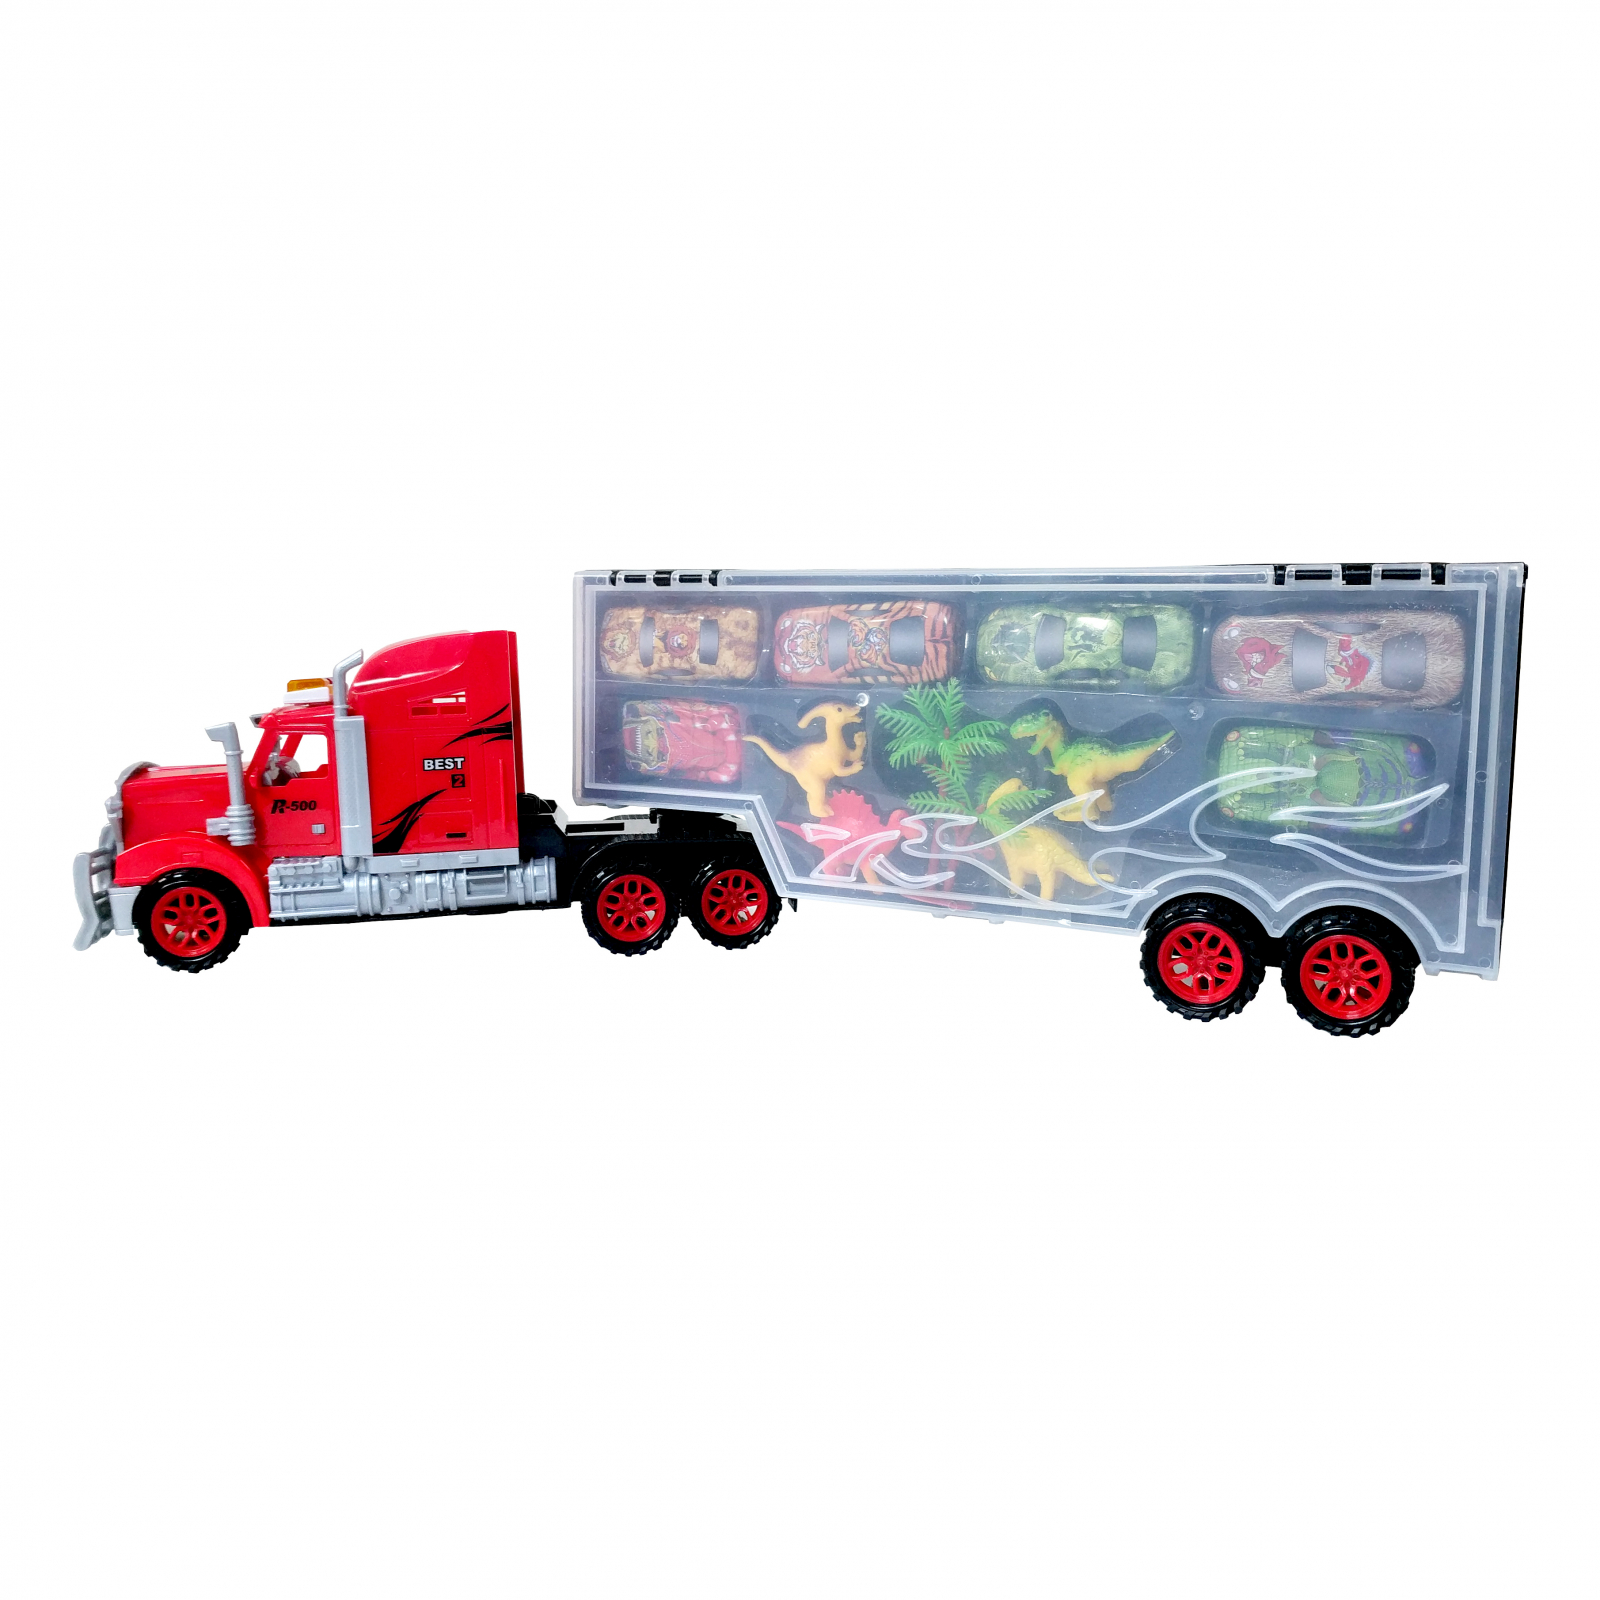 Friction Powered Mobile Garage Dinosaur Car Transport Truck